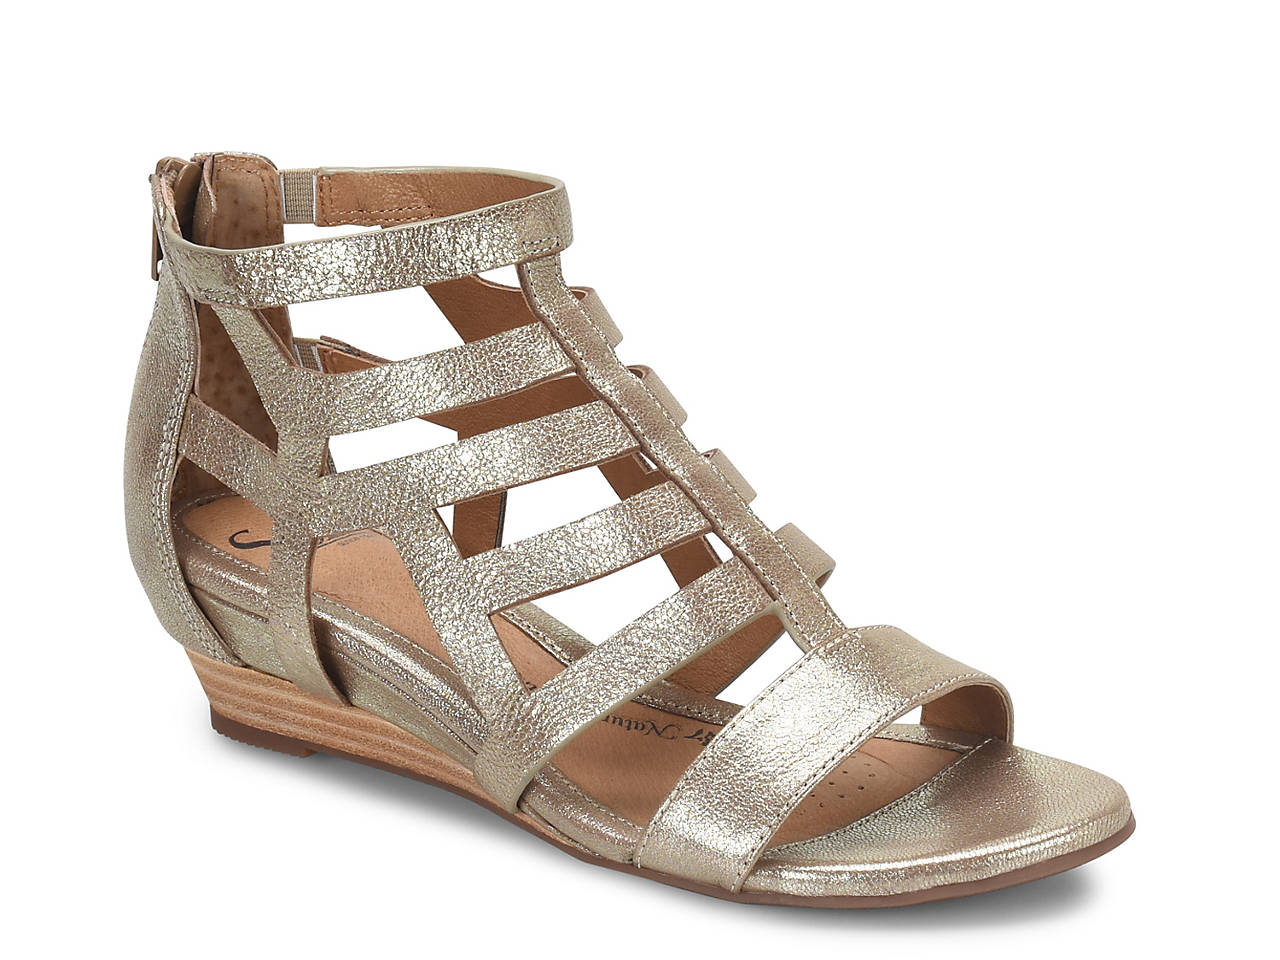 6c699511548c Sofft Ravello Wedge Sandal Women s Shoes